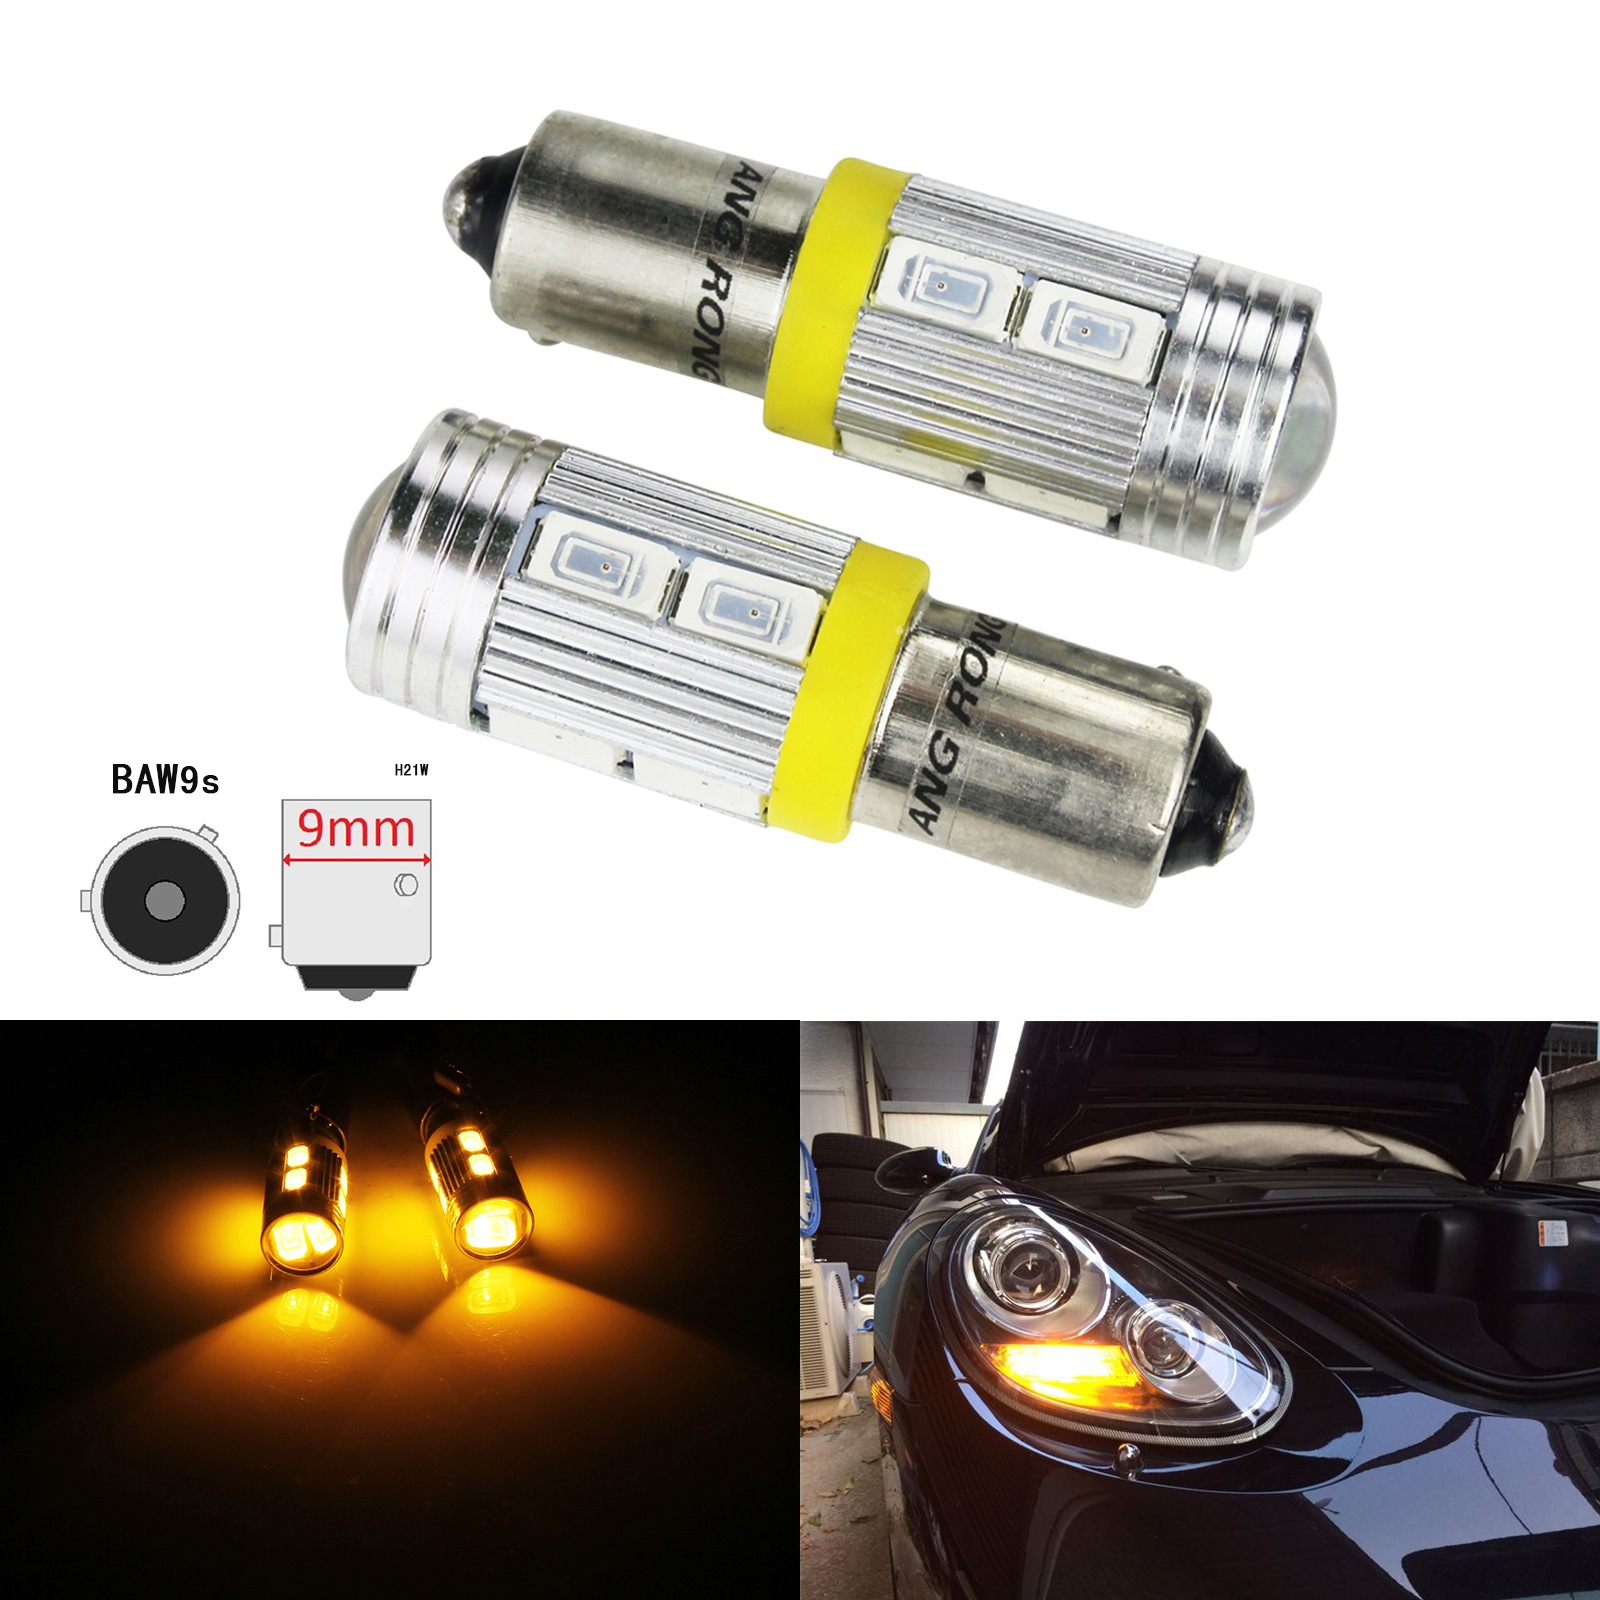 ANGRONG HY21W BAW9s 12146 64137L 10 SMD LED Indicator Turn Signal Reverse Parking Light